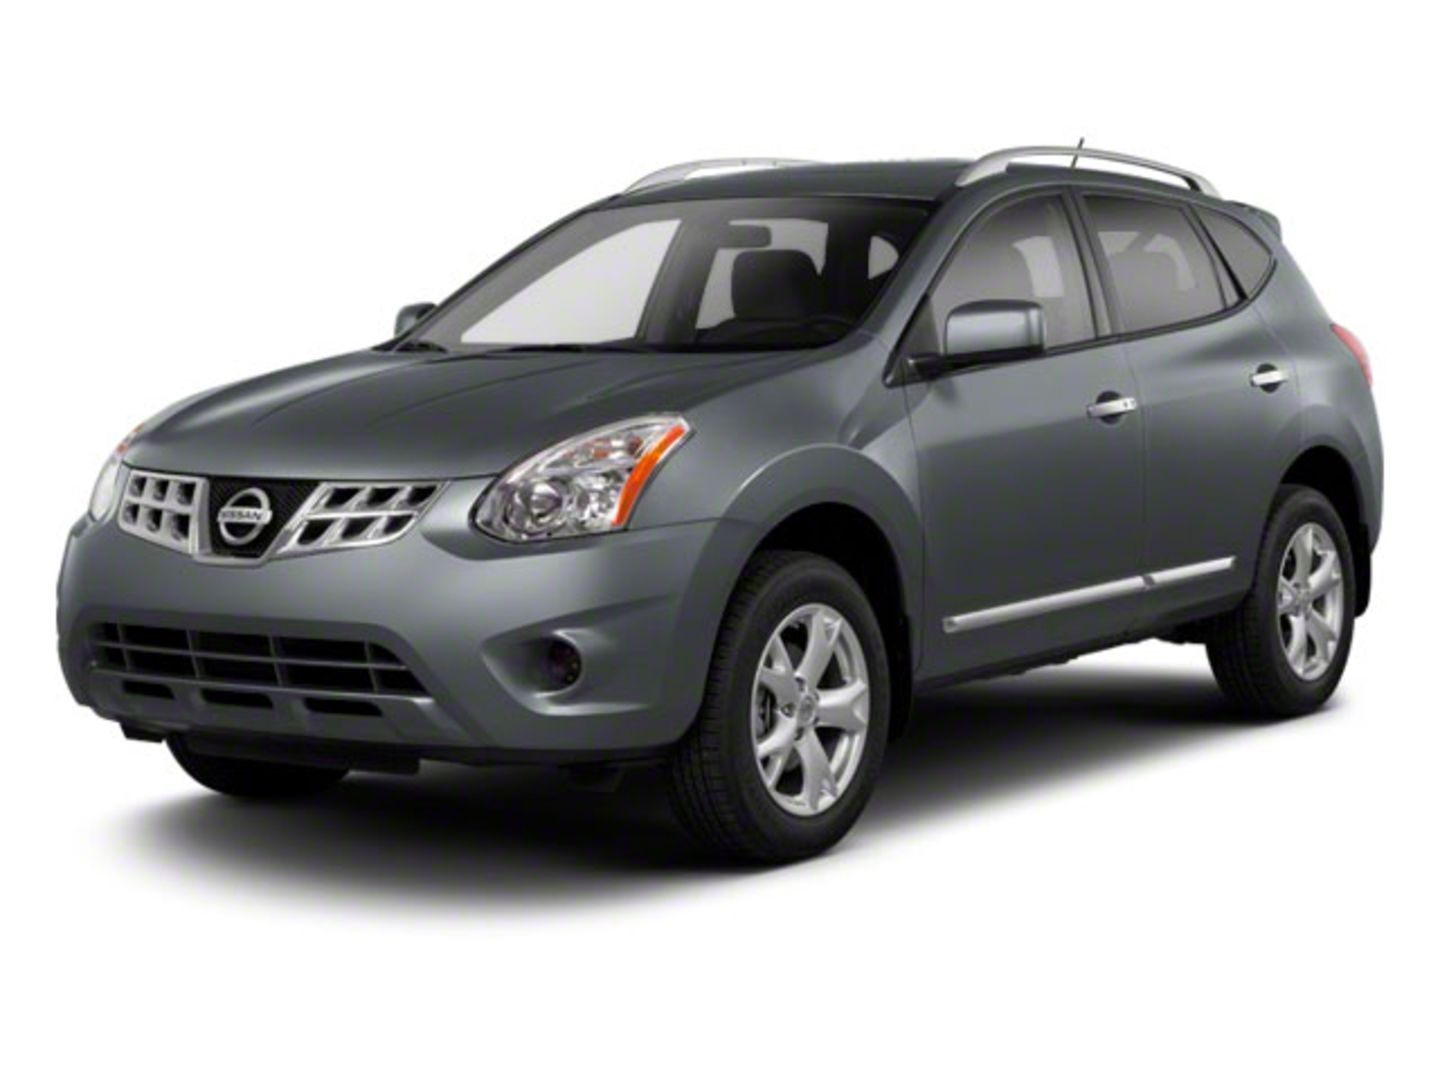 2013 Nissan Rogue S for sale in Yellowknife, Northwest Territories